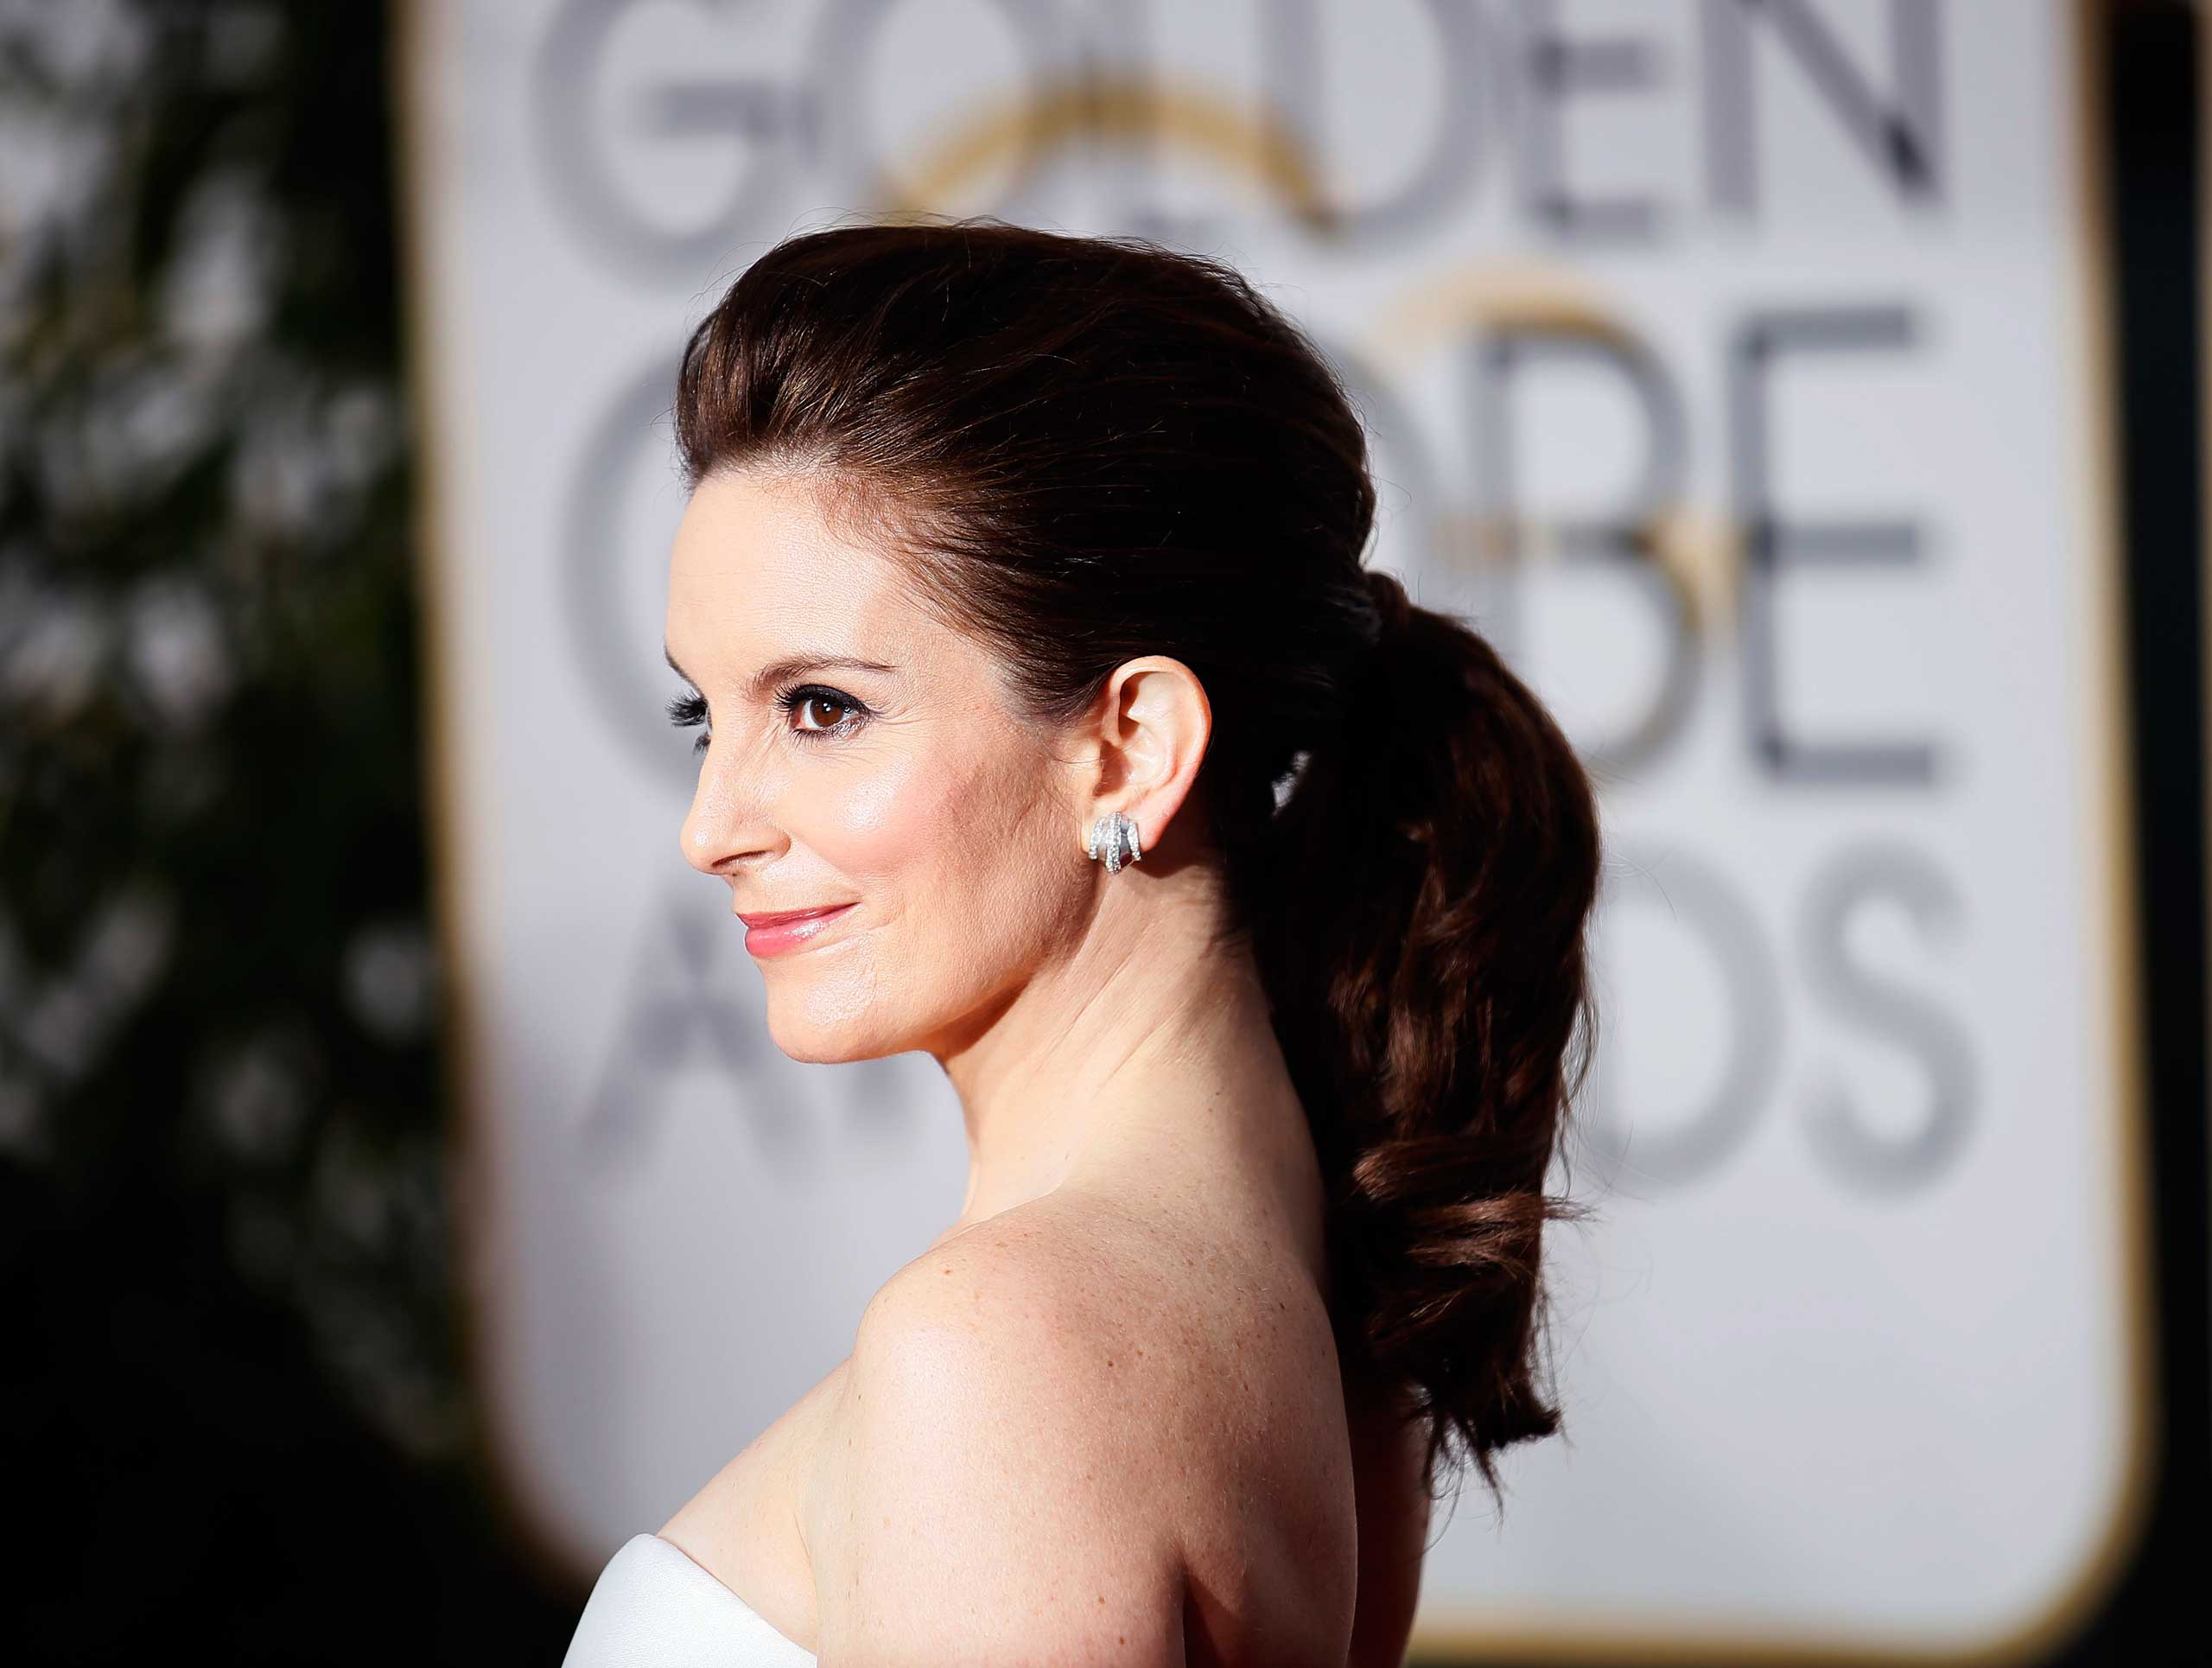 Tina Fey arrives at the 72nd Golden Globe Awards in Beverly Hills, California, Jan. 11, 2015.